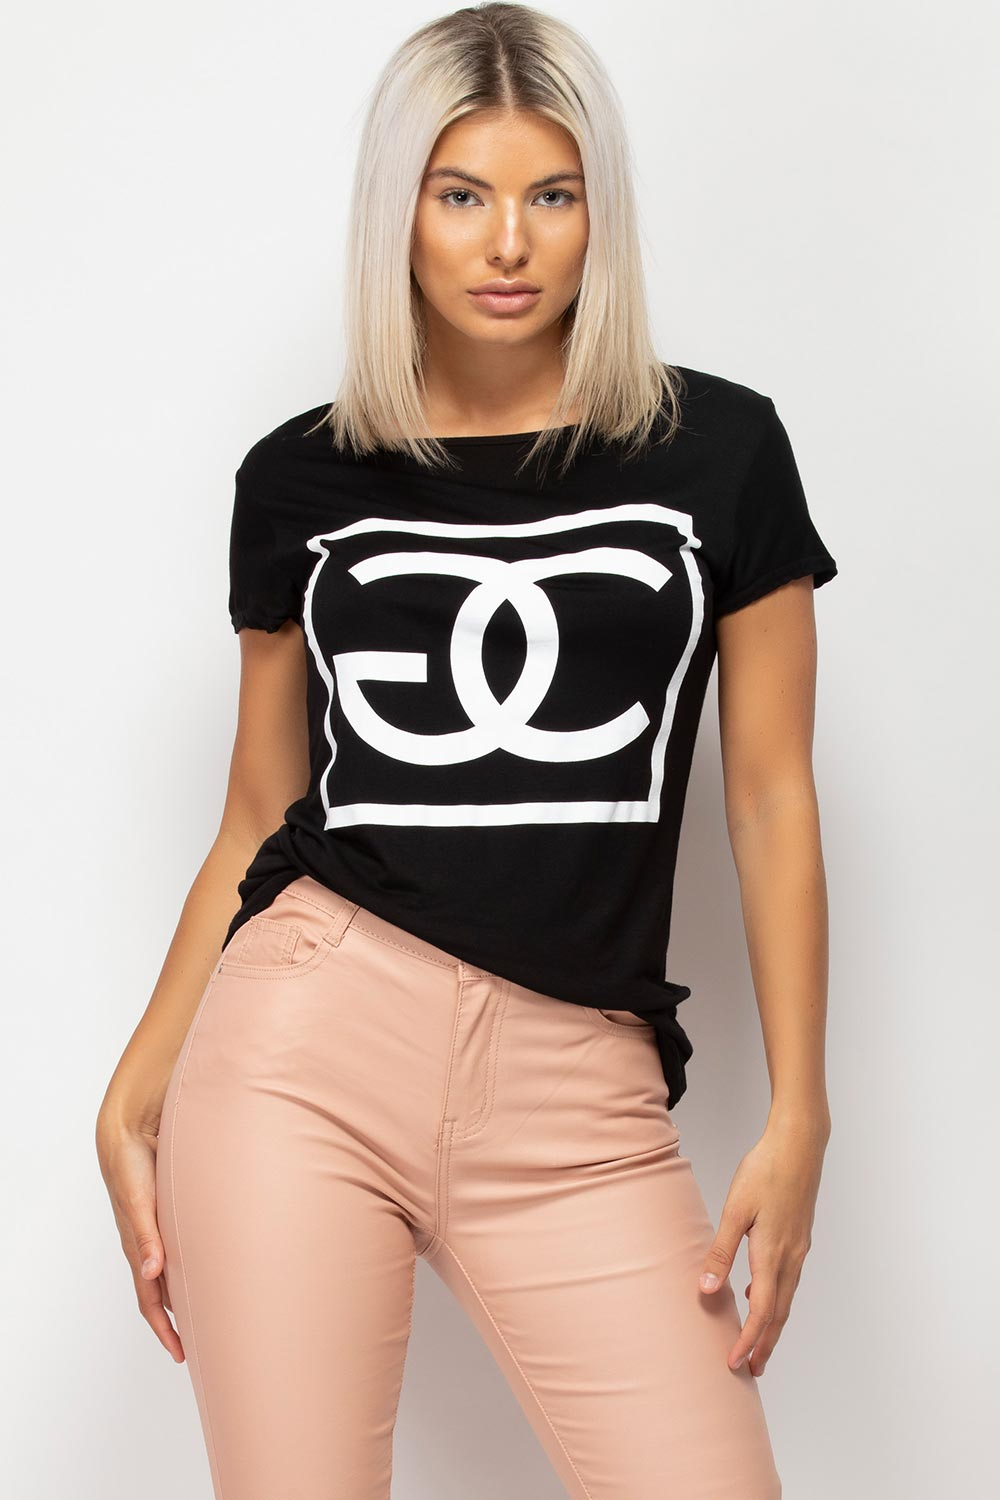 womens black t shirt with cg slogan